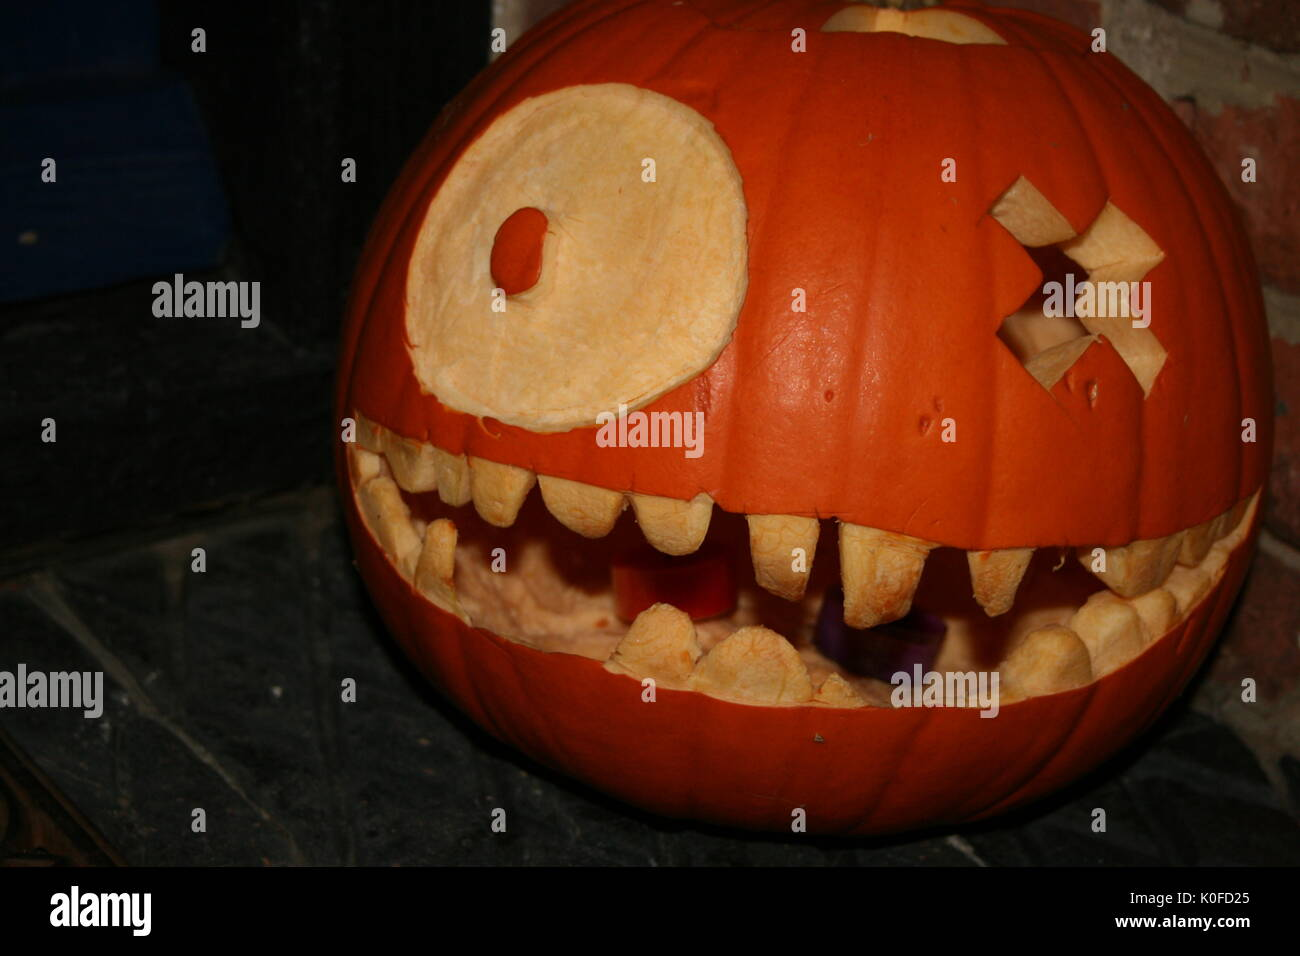 Scary Pumpkin Carved For Halloween Stock Photo Alamy Free for commercial use no attribution required high quality images. https www alamy com scary pumpkin carved for halloween image155232845 html